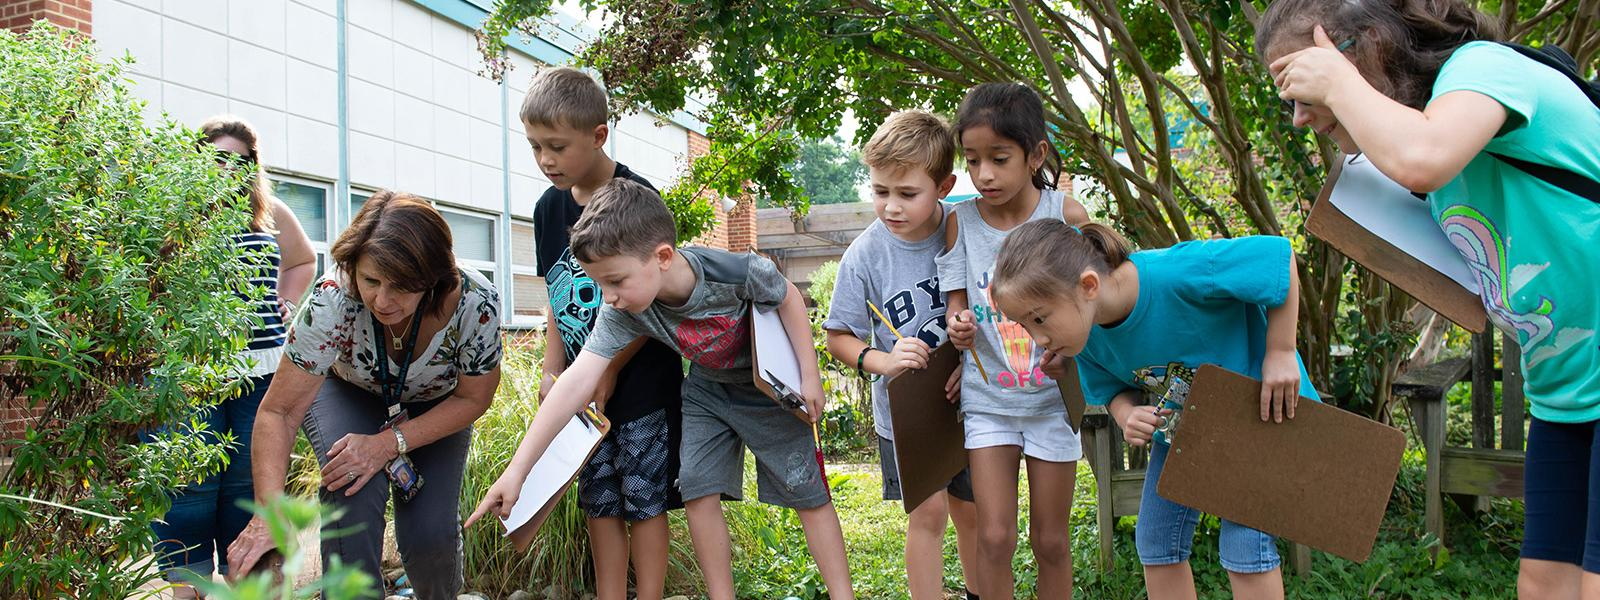 Students get a close look at pond inhabitants in the National Wildlife Federation Certified Schoolyard Habitat at Flint Hill Elementary School during a science lesson.